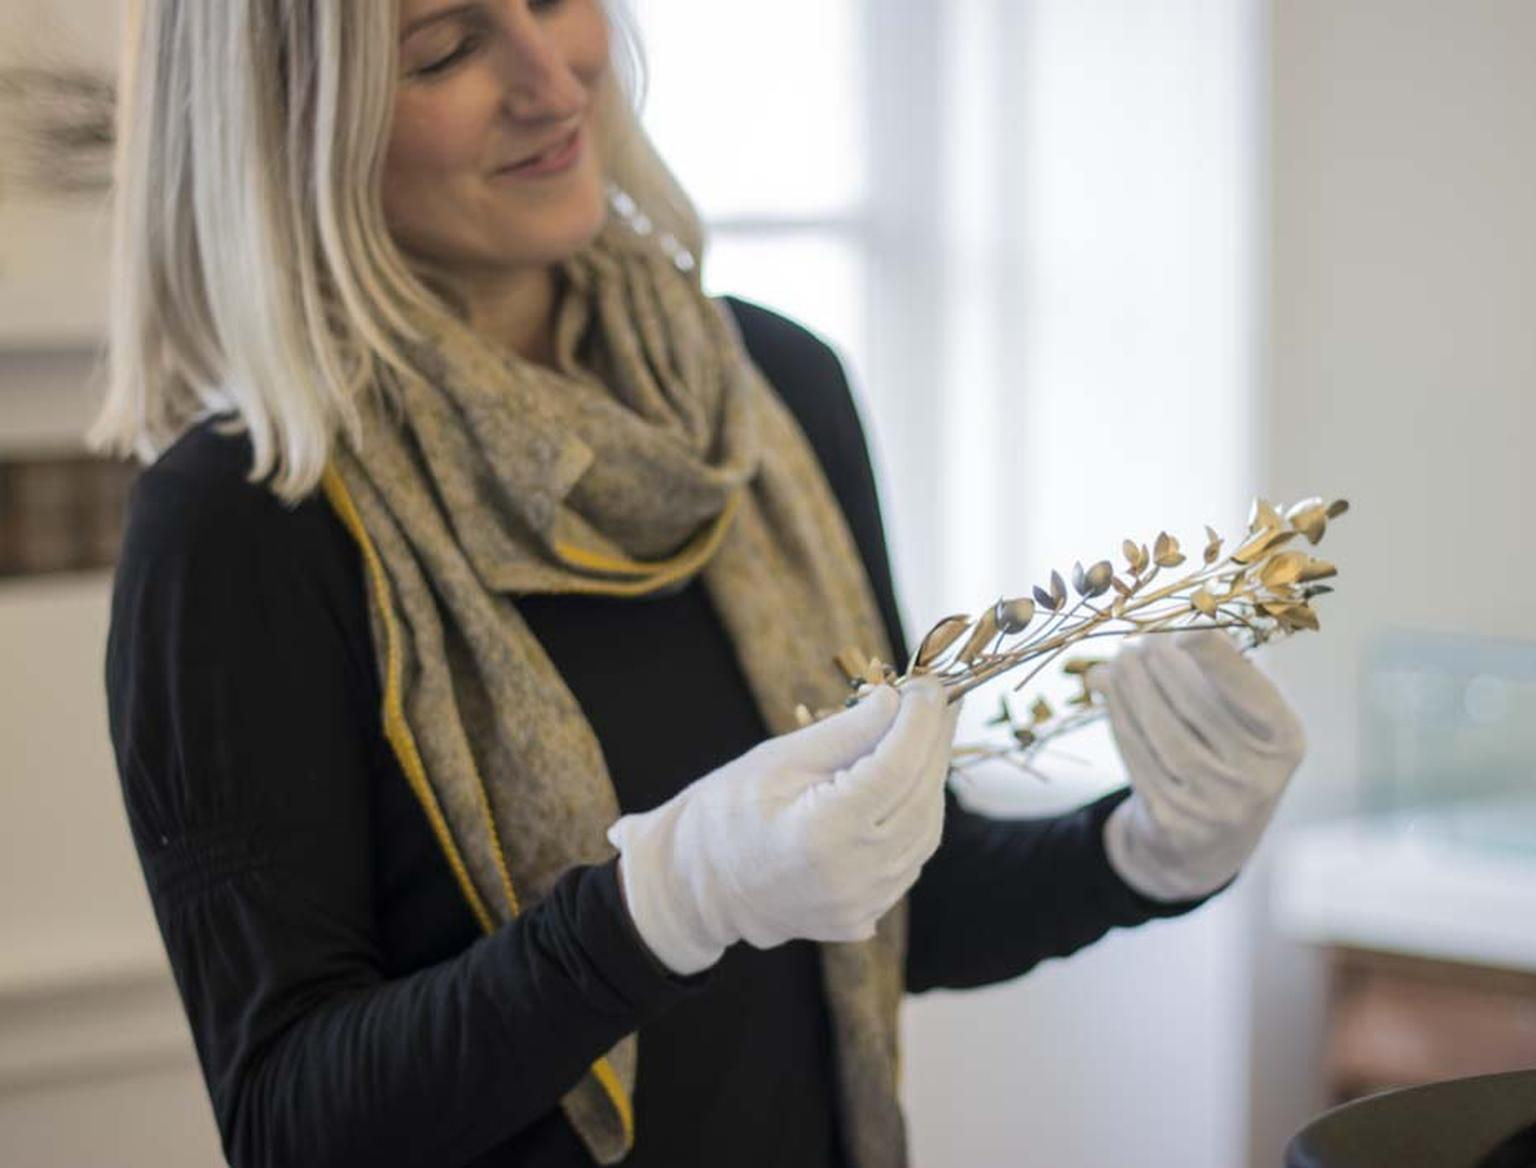 Incorporating local flora and fauna, Cornwall-based jewellery designer Mirri Damer created the crown for comedian Dawn French to wear on her inauguration as chancellor of Falmouth University.